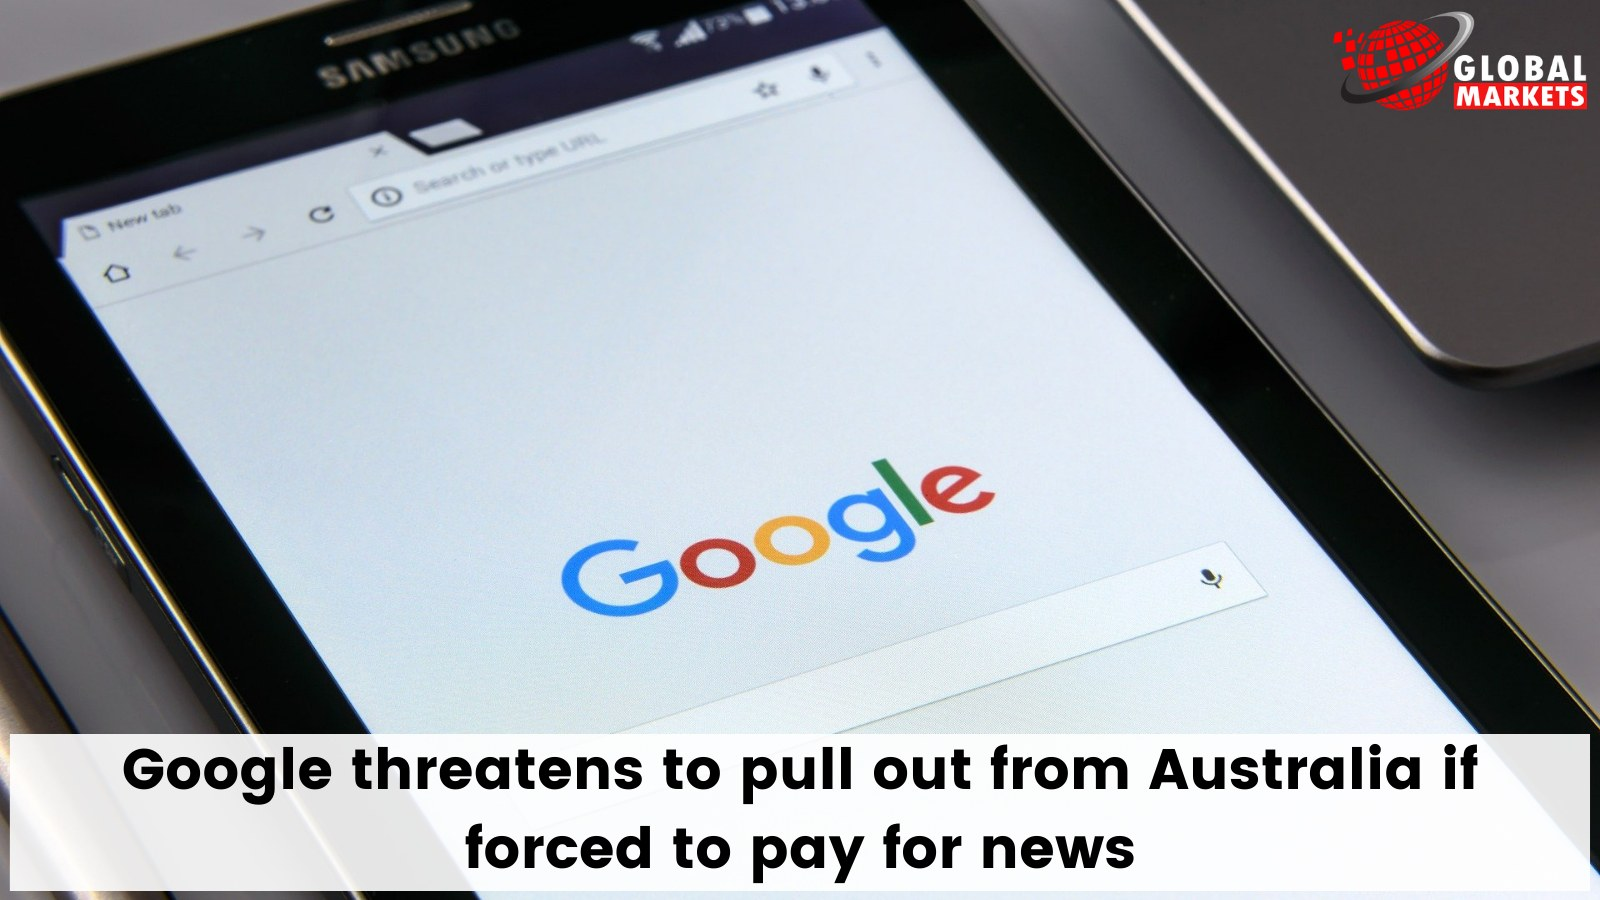 Google threatens to pull out from Australia if forced to pay for news